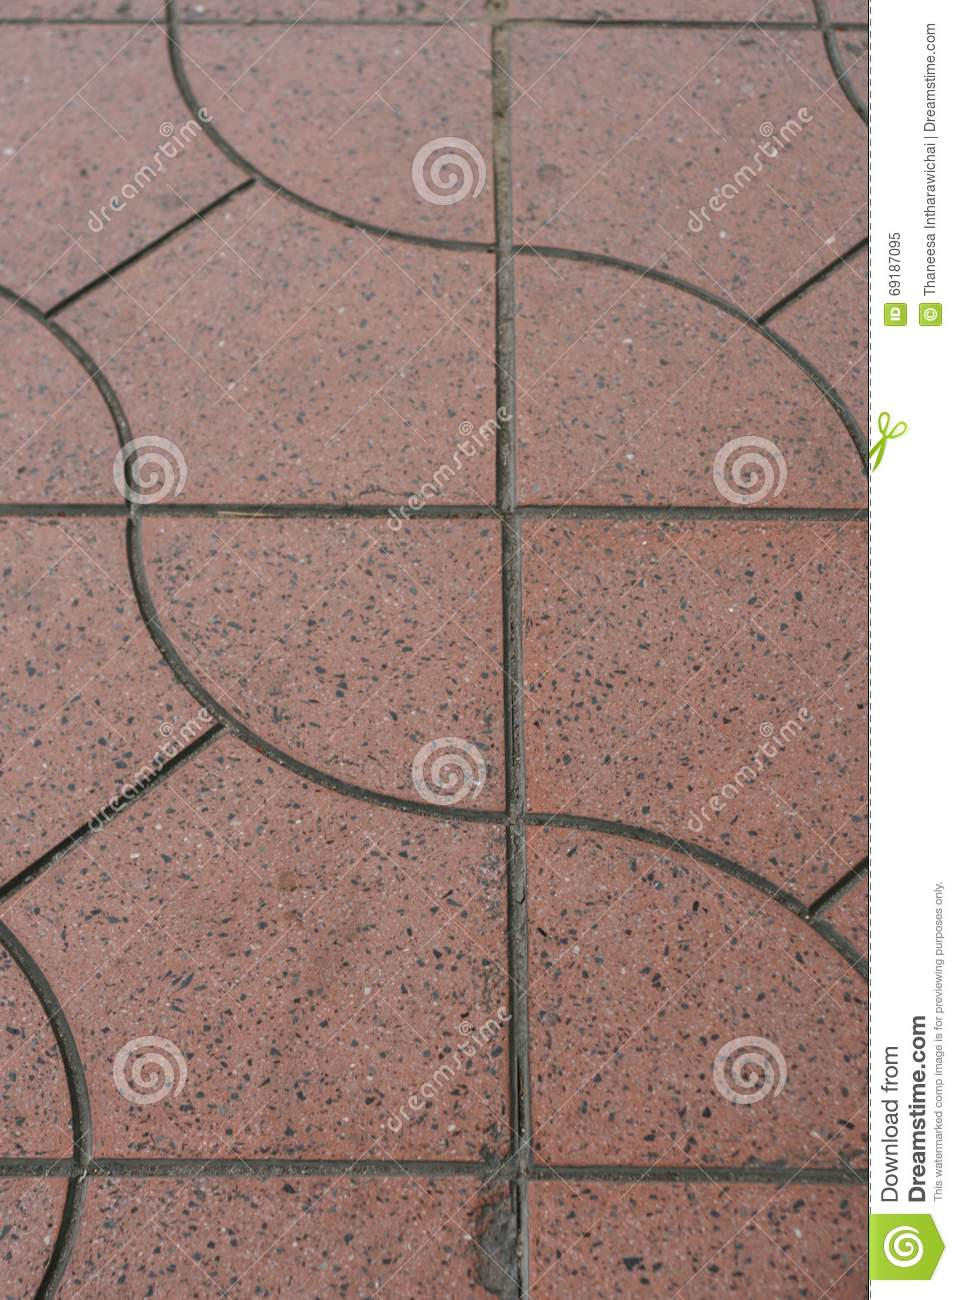 Pattern of red floor tiles stock image image of path 69187095 pattern of red floor tiles dailygadgetfo Choice Image